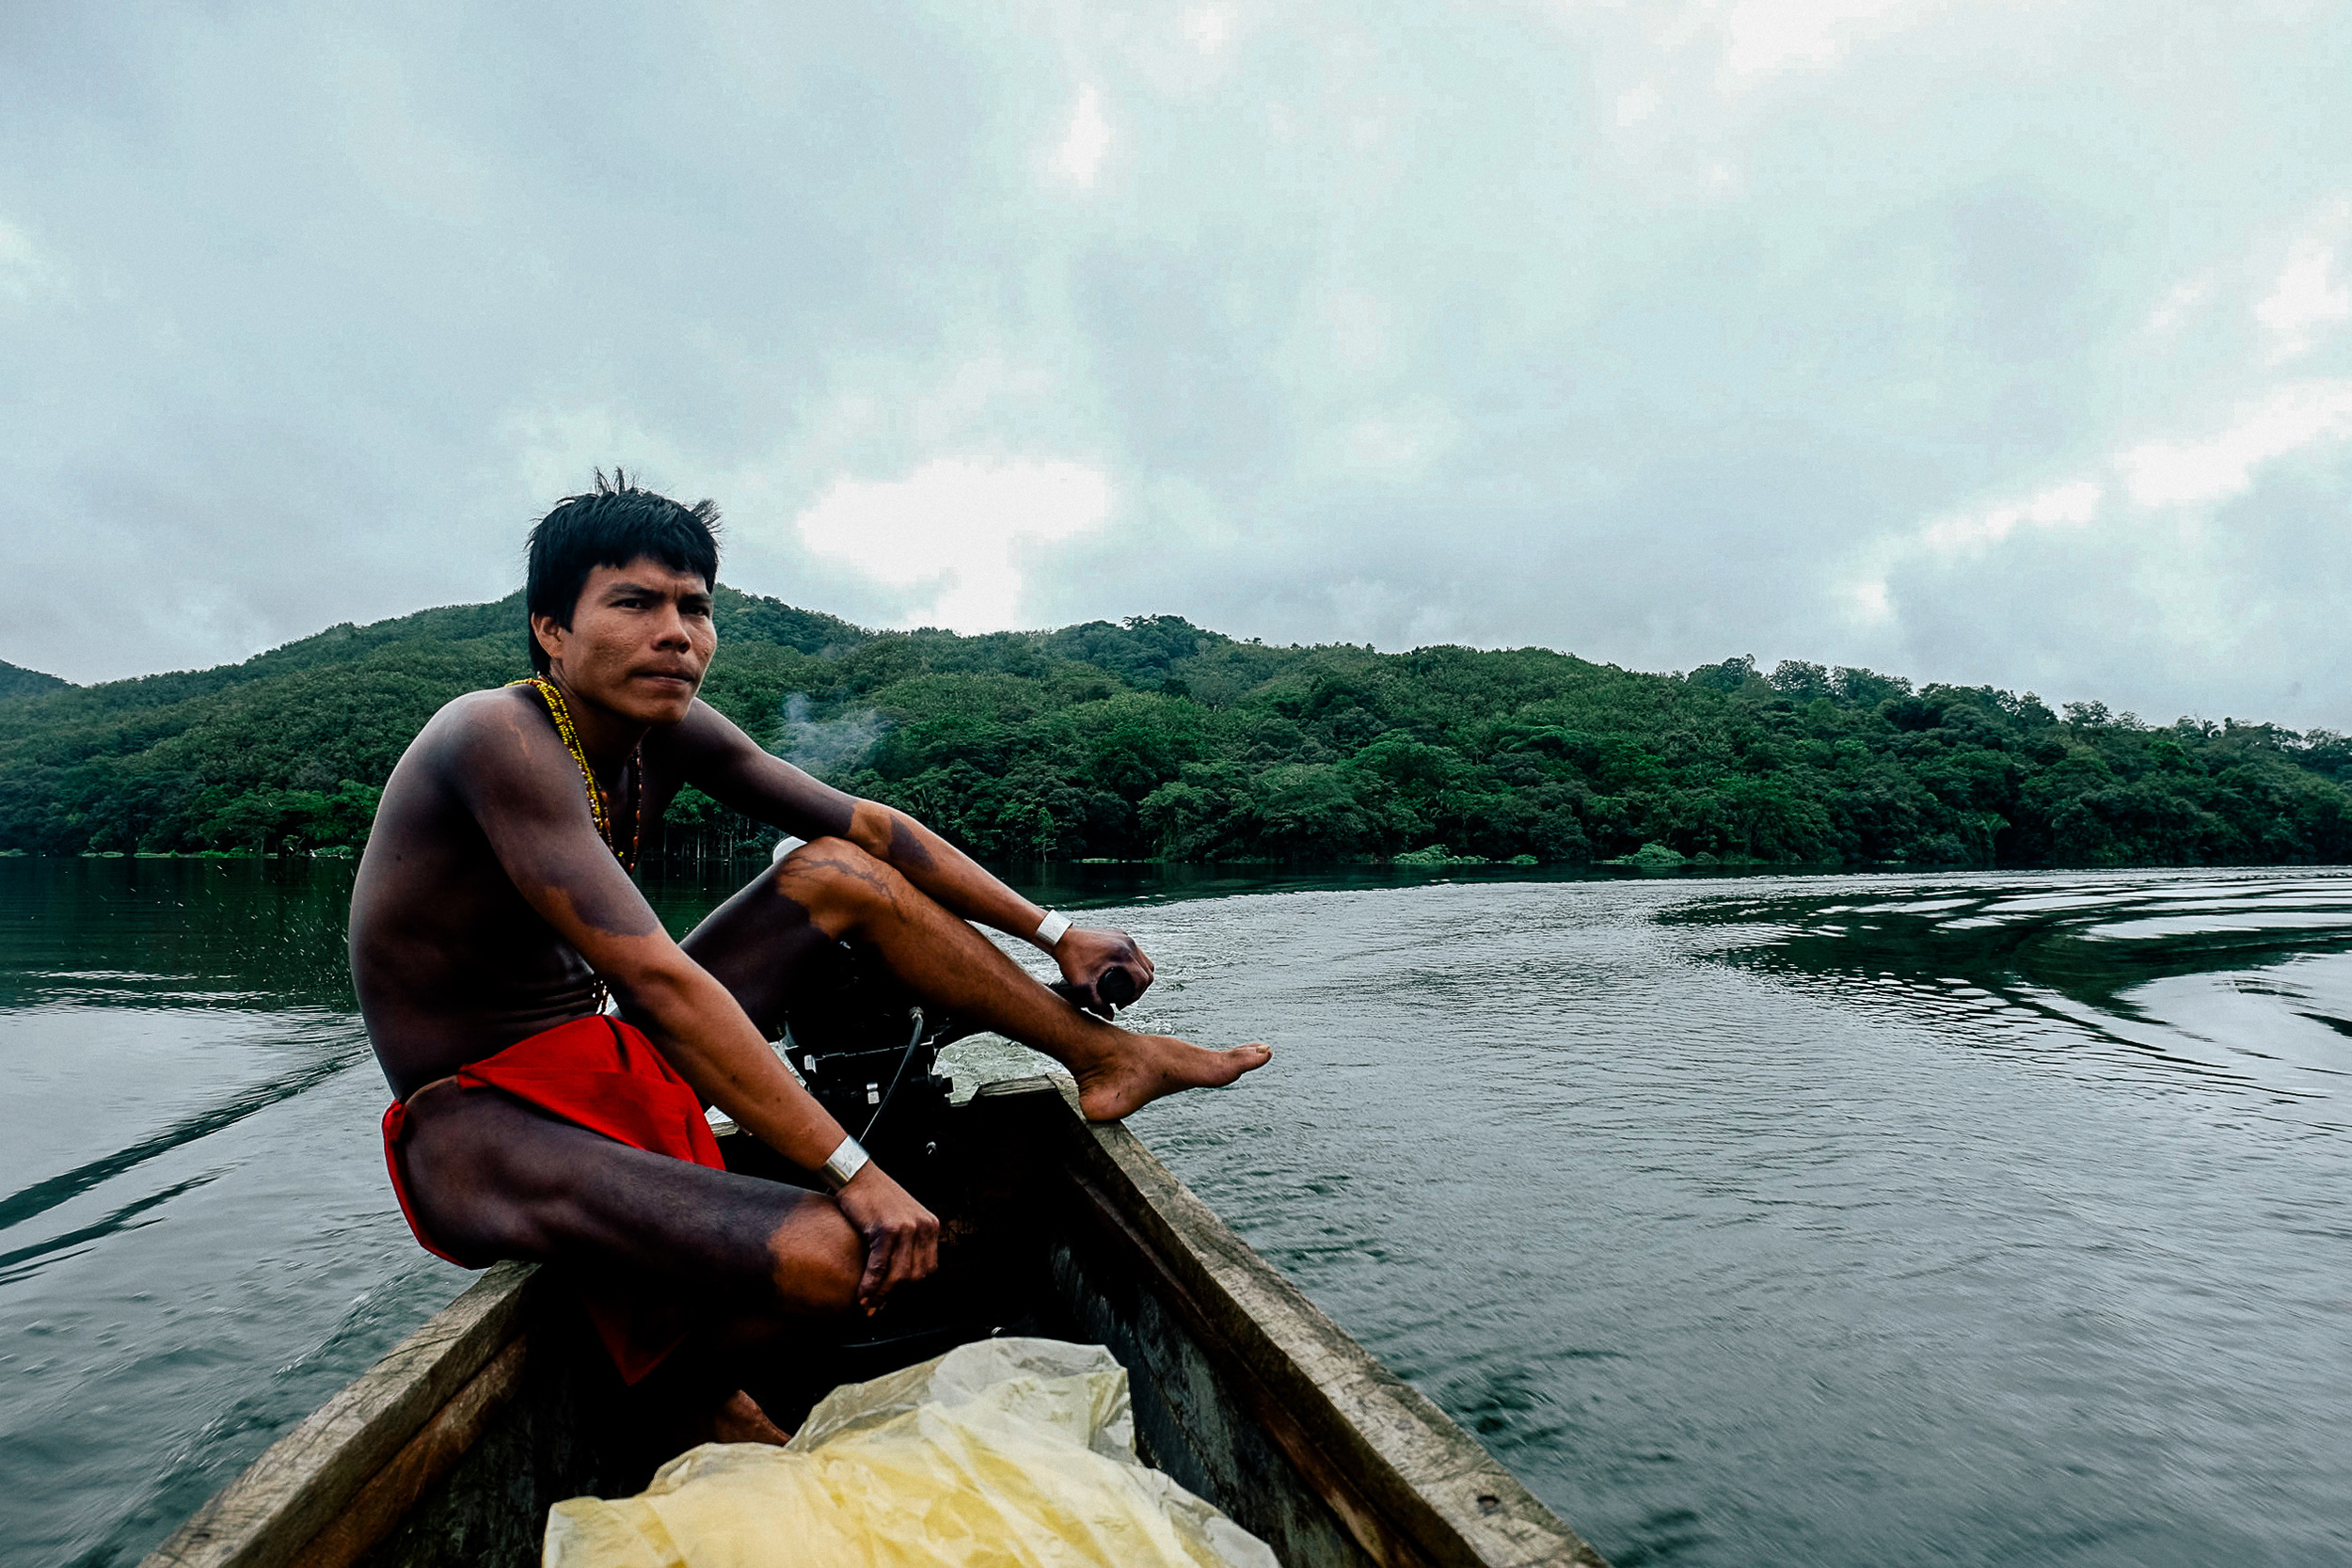 One of the young Embera men picked us up from the docks in a traditionally made canoe. The canoe is extremely important to the Embera, historically the art of crafting a canoe like this was a right of passage for Embera men and sometimes served as a prerequisite for marriage. We travelled through a myriad of rivers and canals to get to arrive at the village.